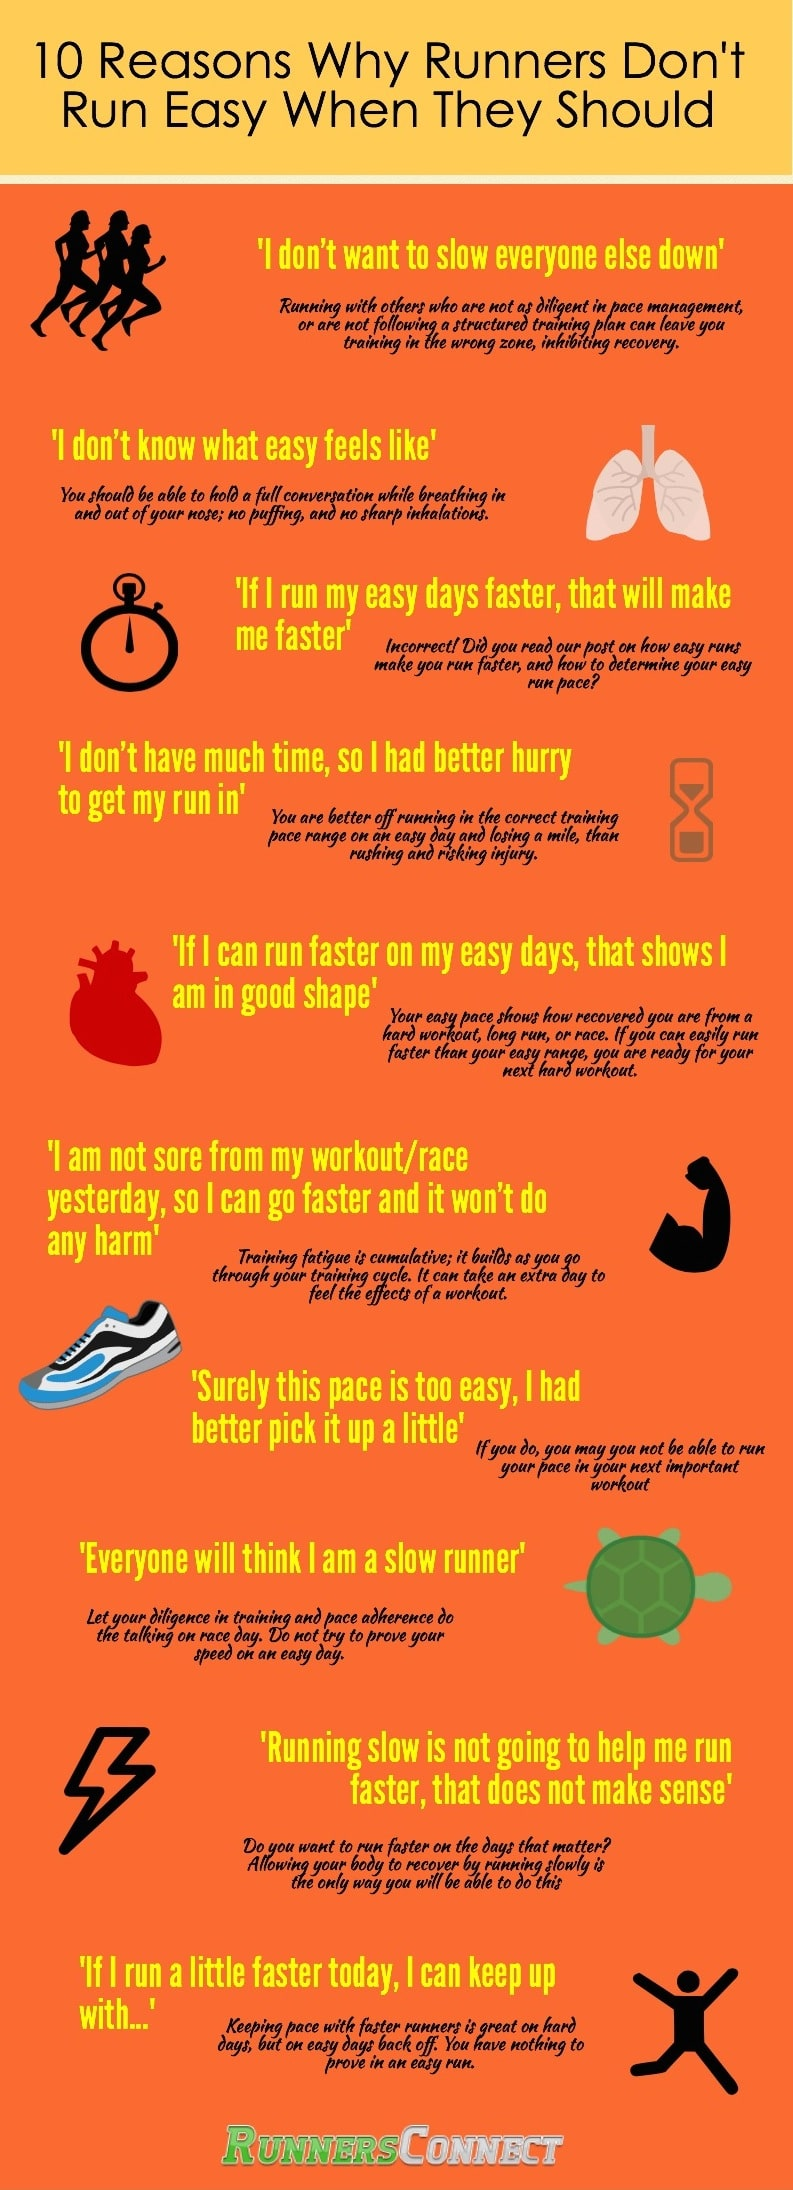 10 Reasons Runner's Do Not Go Easy (When They Know They Should)